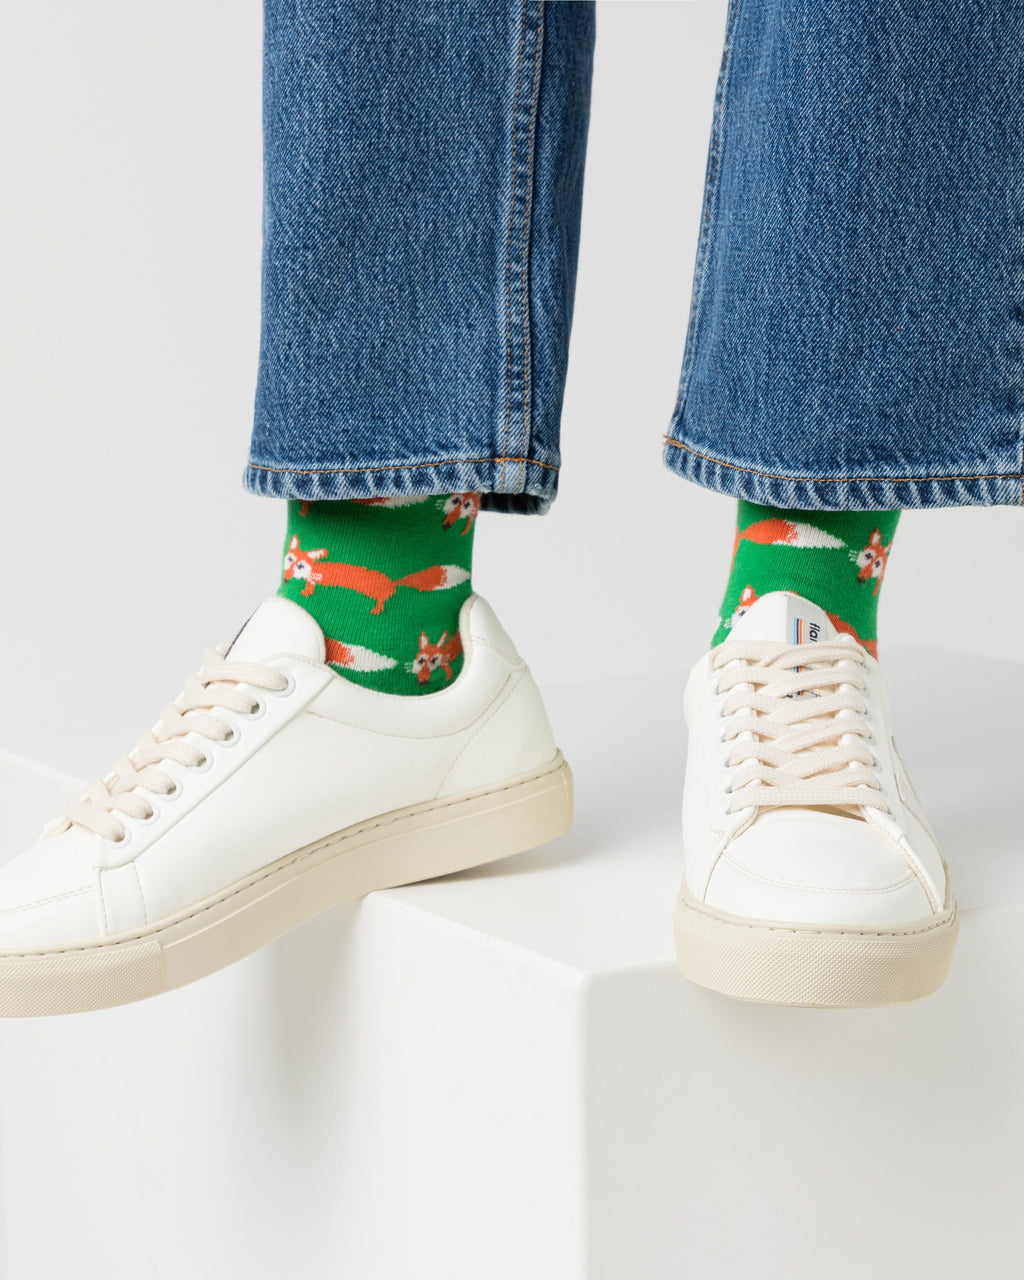 variant_1 | EN Green Socks with Print Women | DE Grüne Socken mit Print Damen